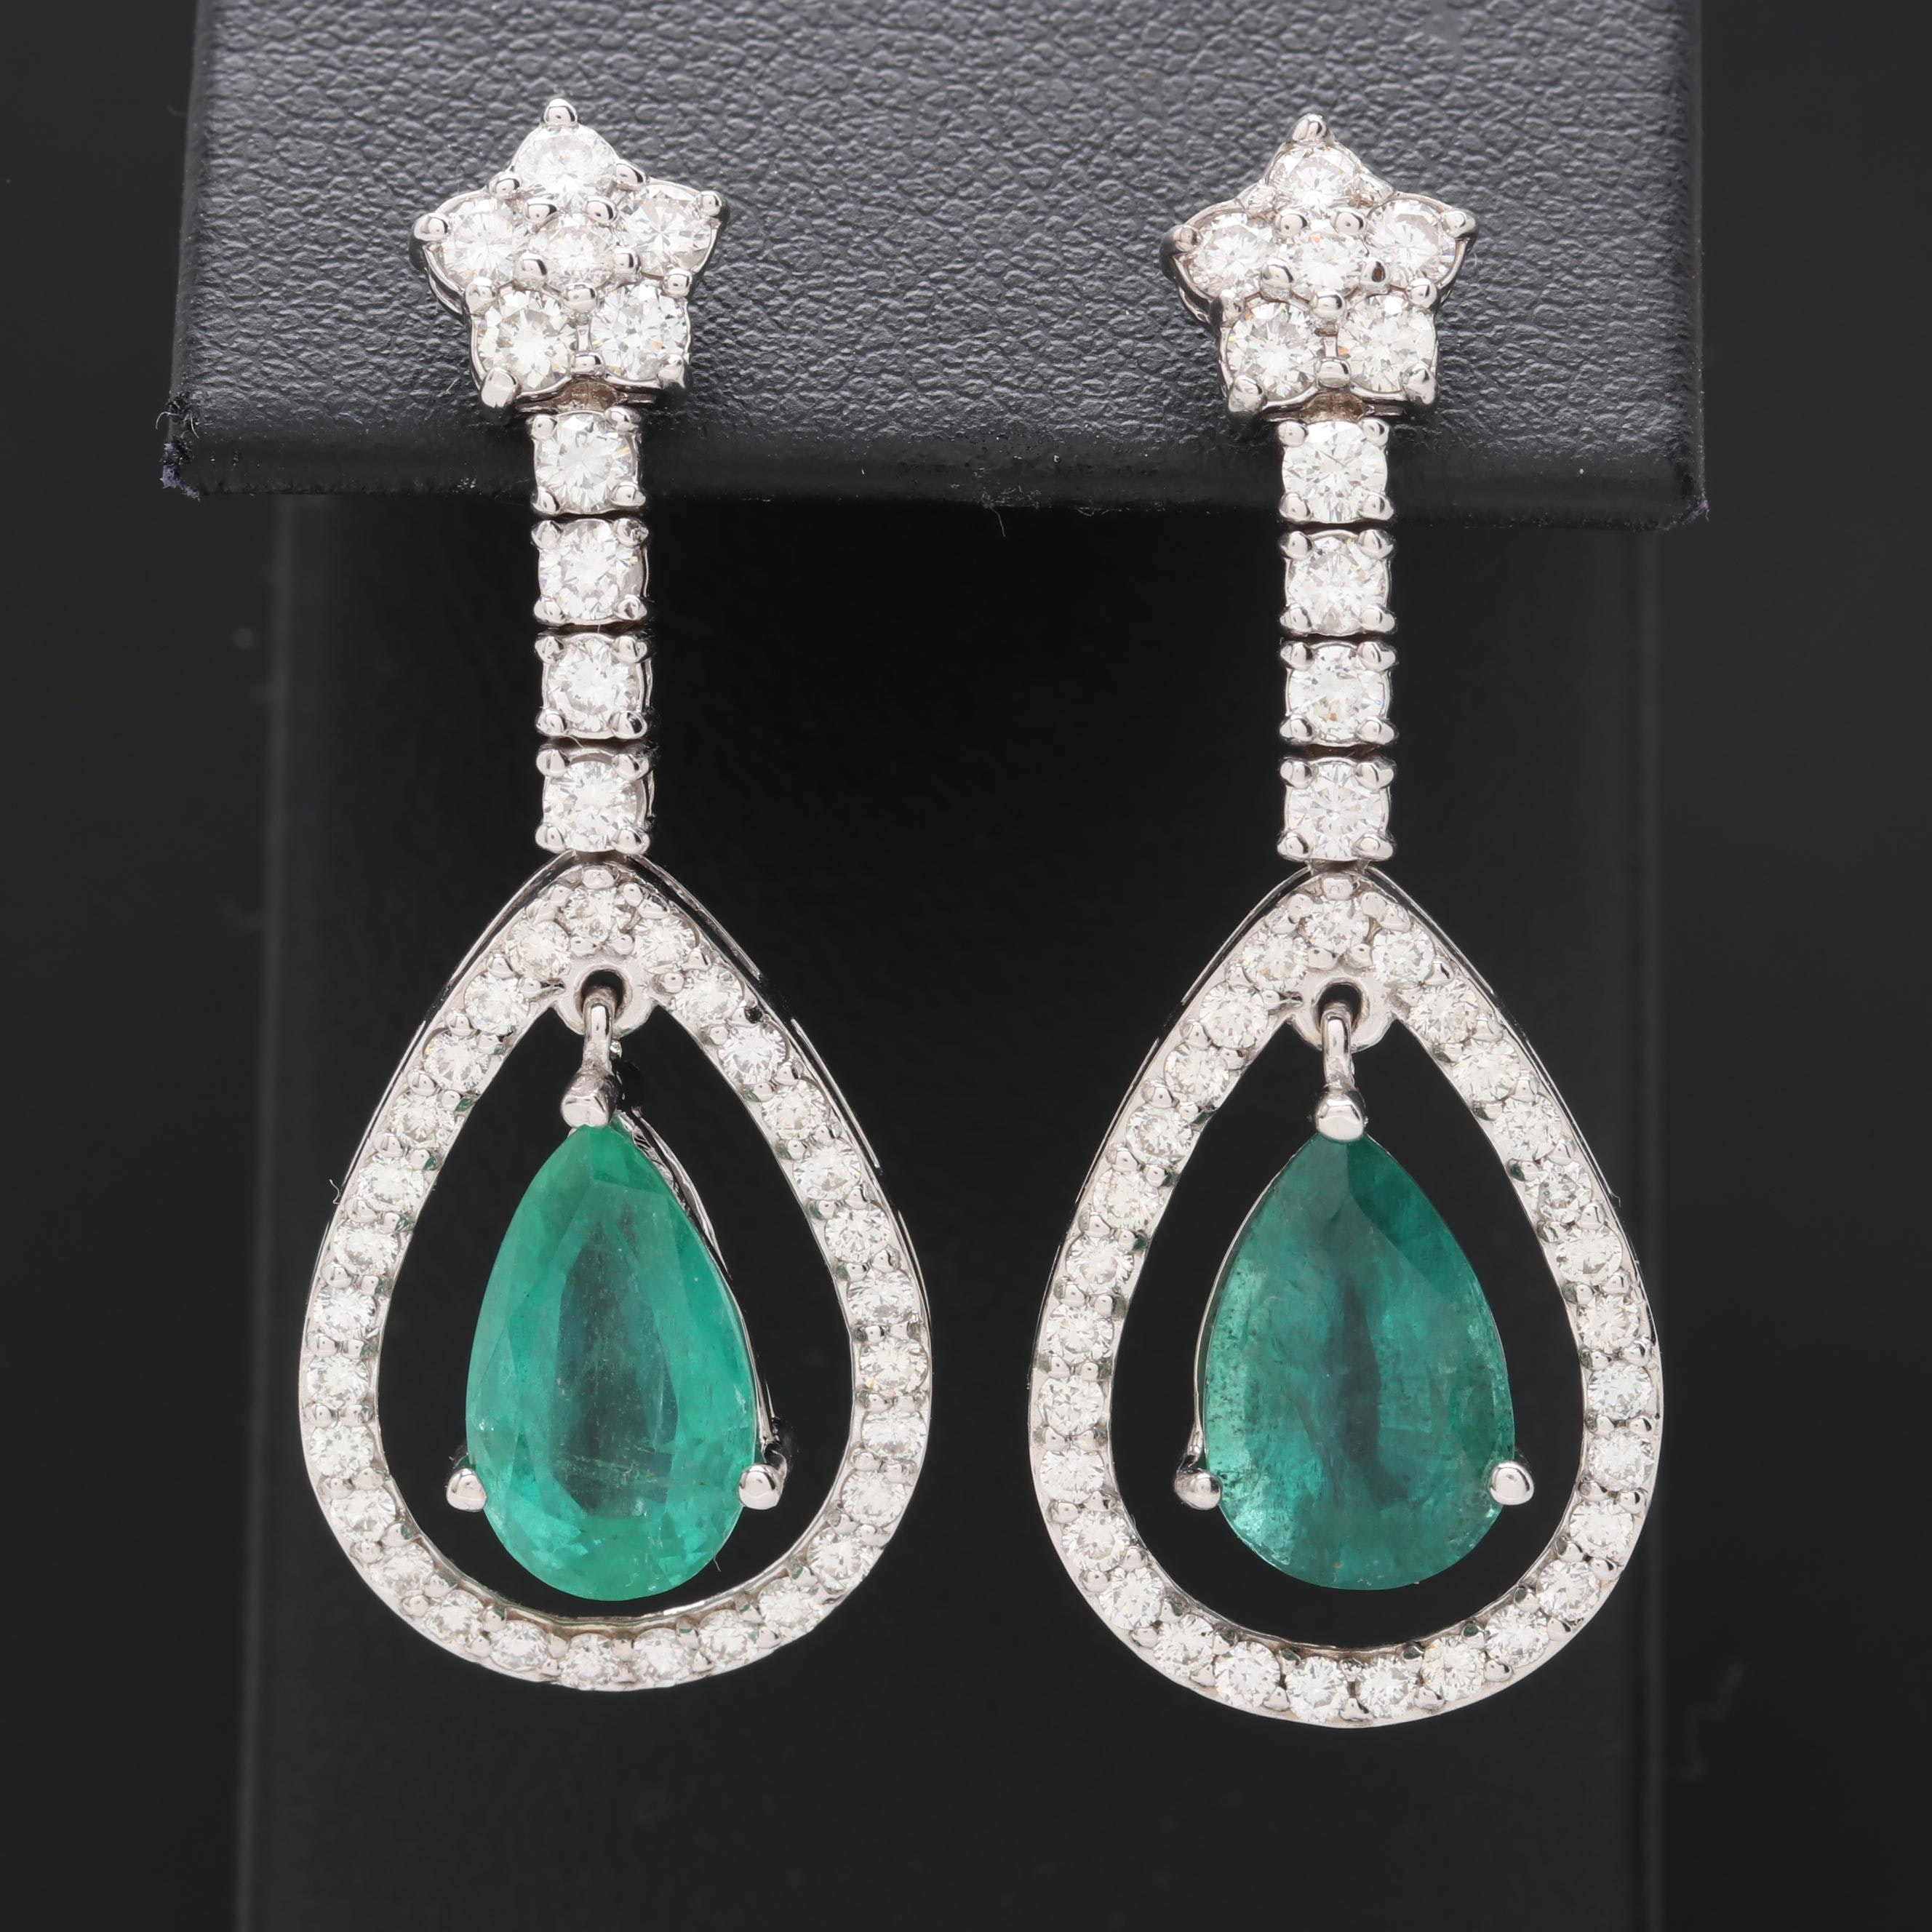 14K White Gold 4.30 CTW Emerald and 2.33 CTW Diamond Earrings